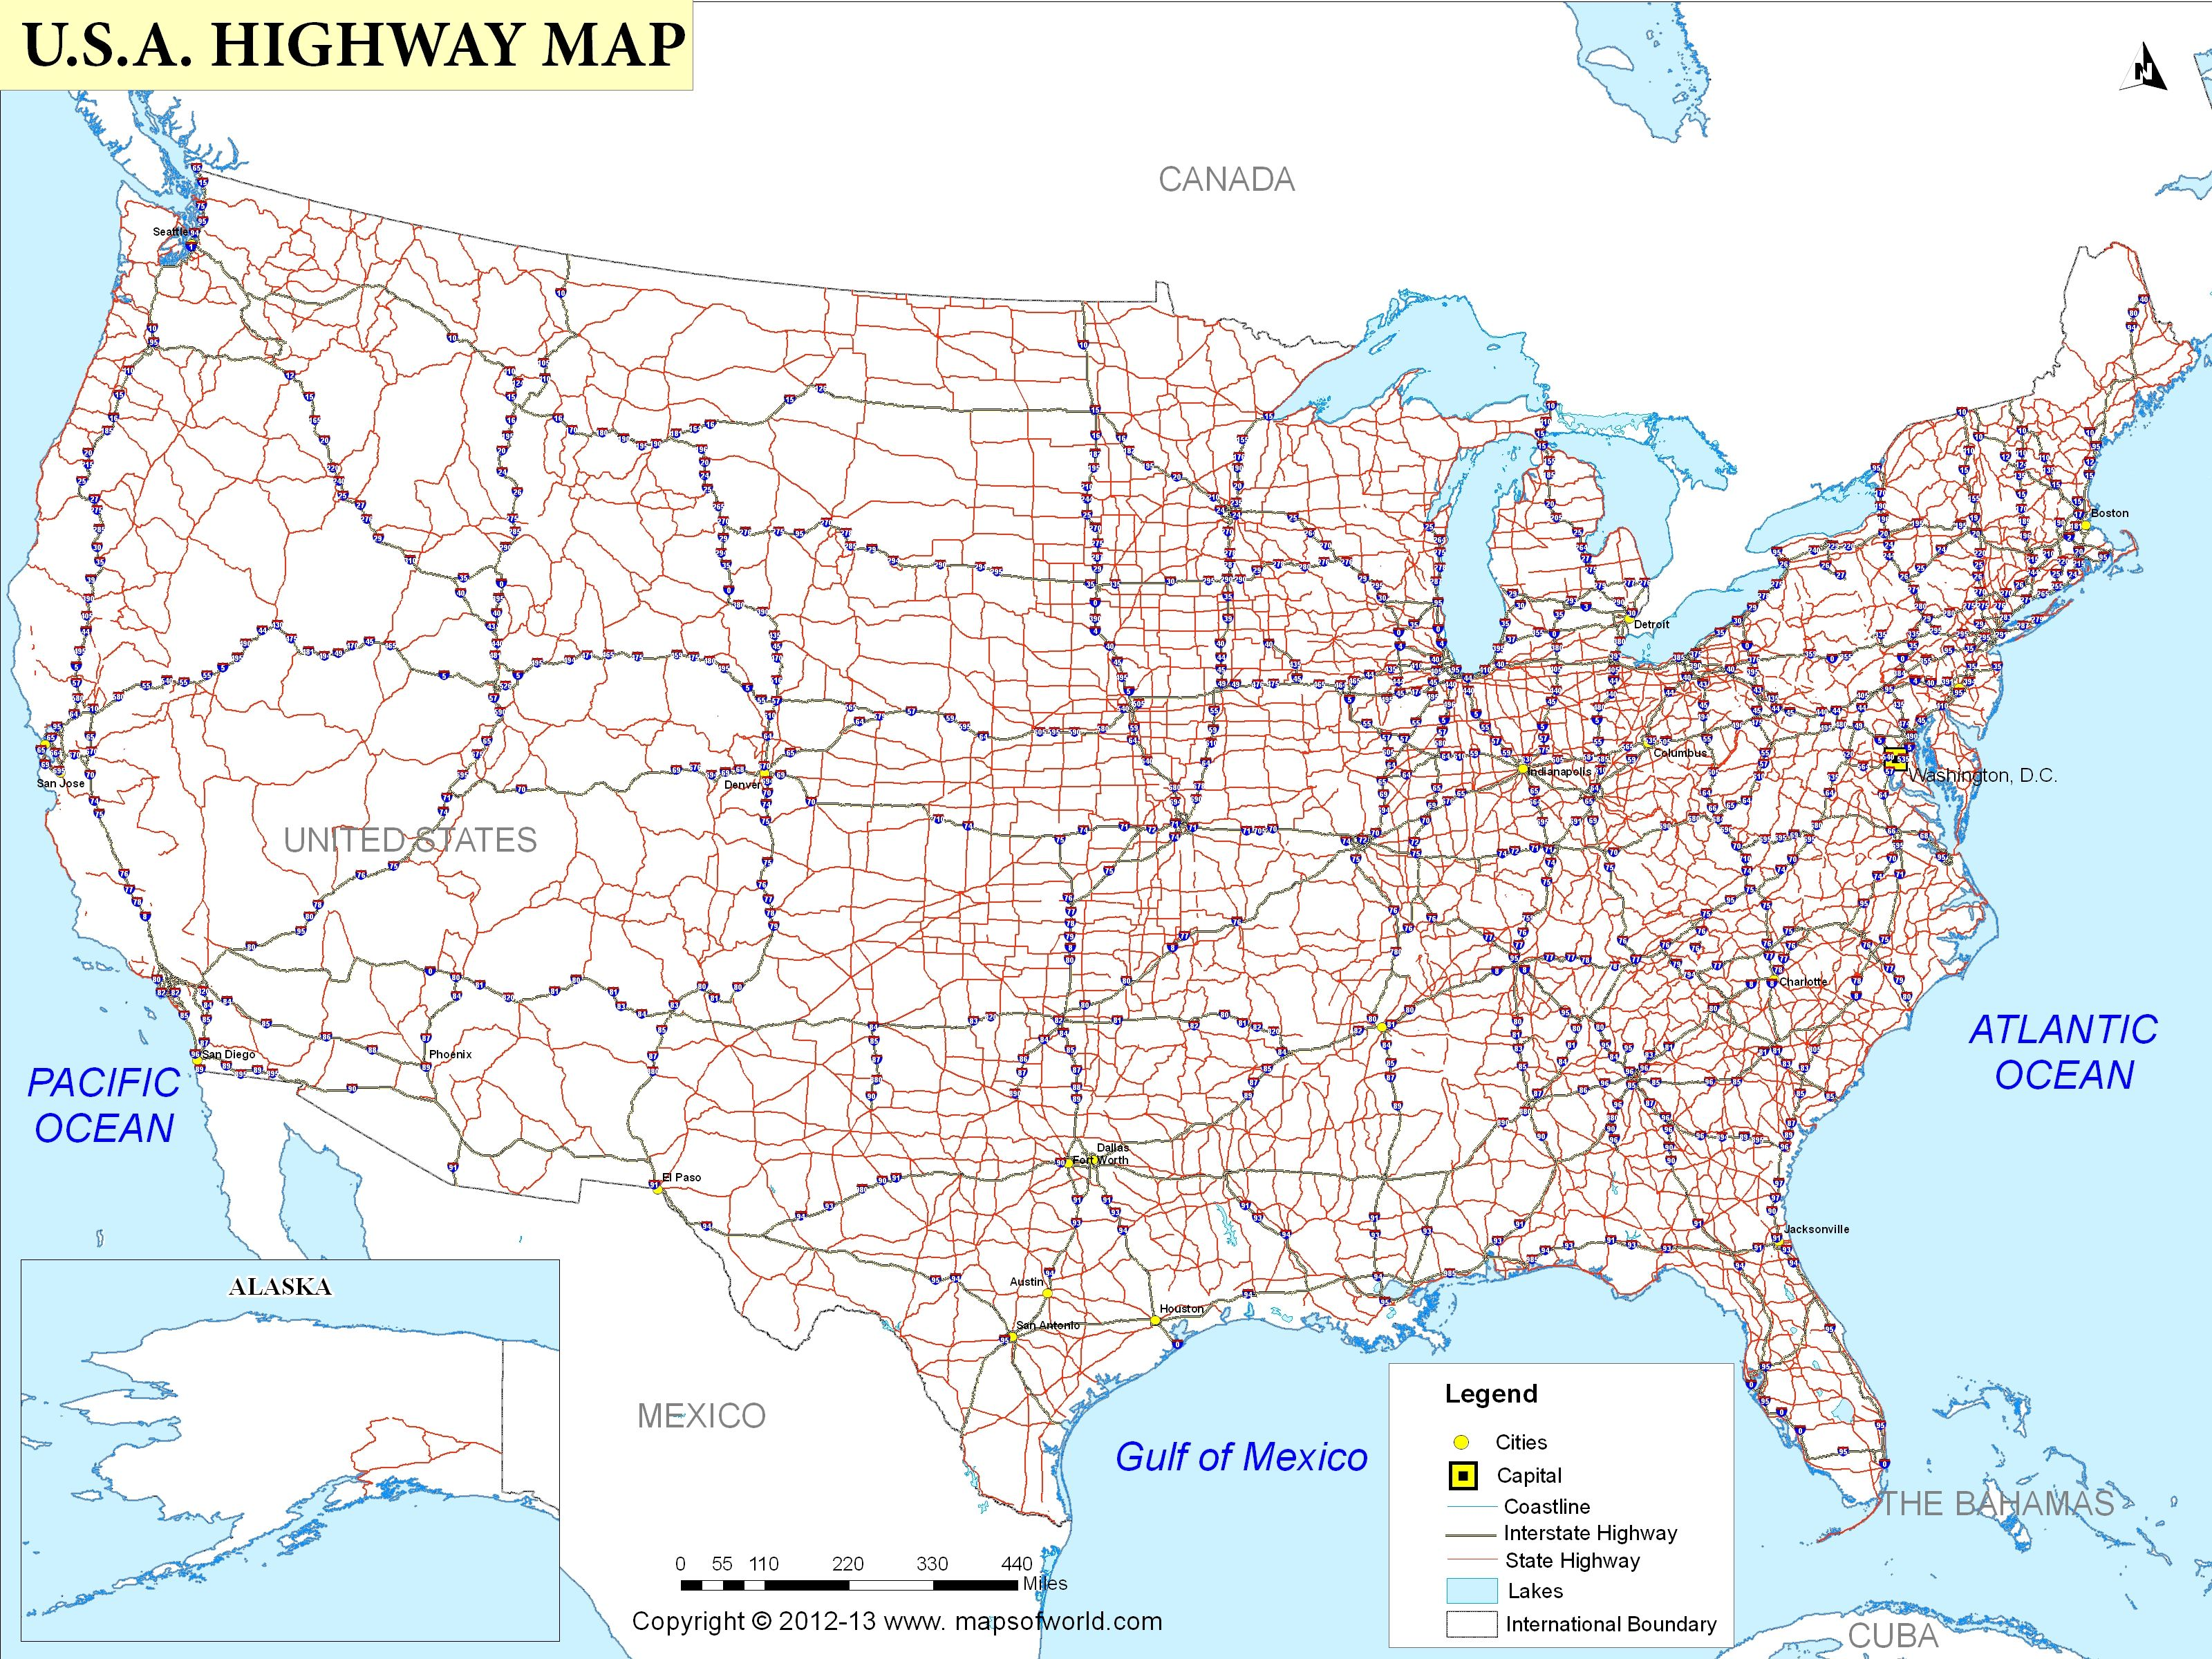 US Highway Map | Images in 2019 | Highway map, United states map ...